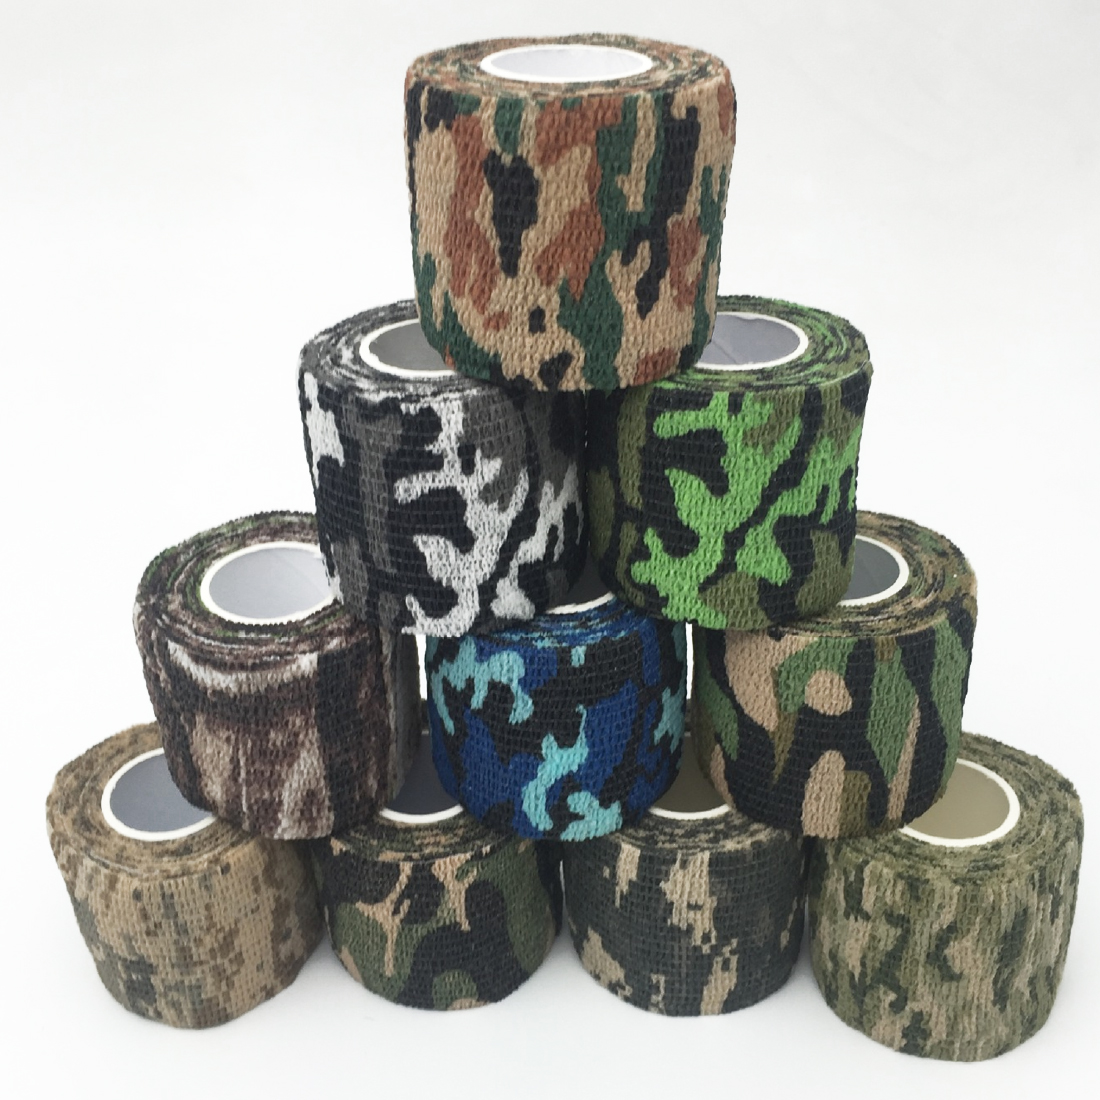 Durable 5cmx4.5m Army Camo Camouflage Stealth Tape Waterproof Nonwoven Wound Bandage Sports Wrist Support Tatoo Grip Wrap